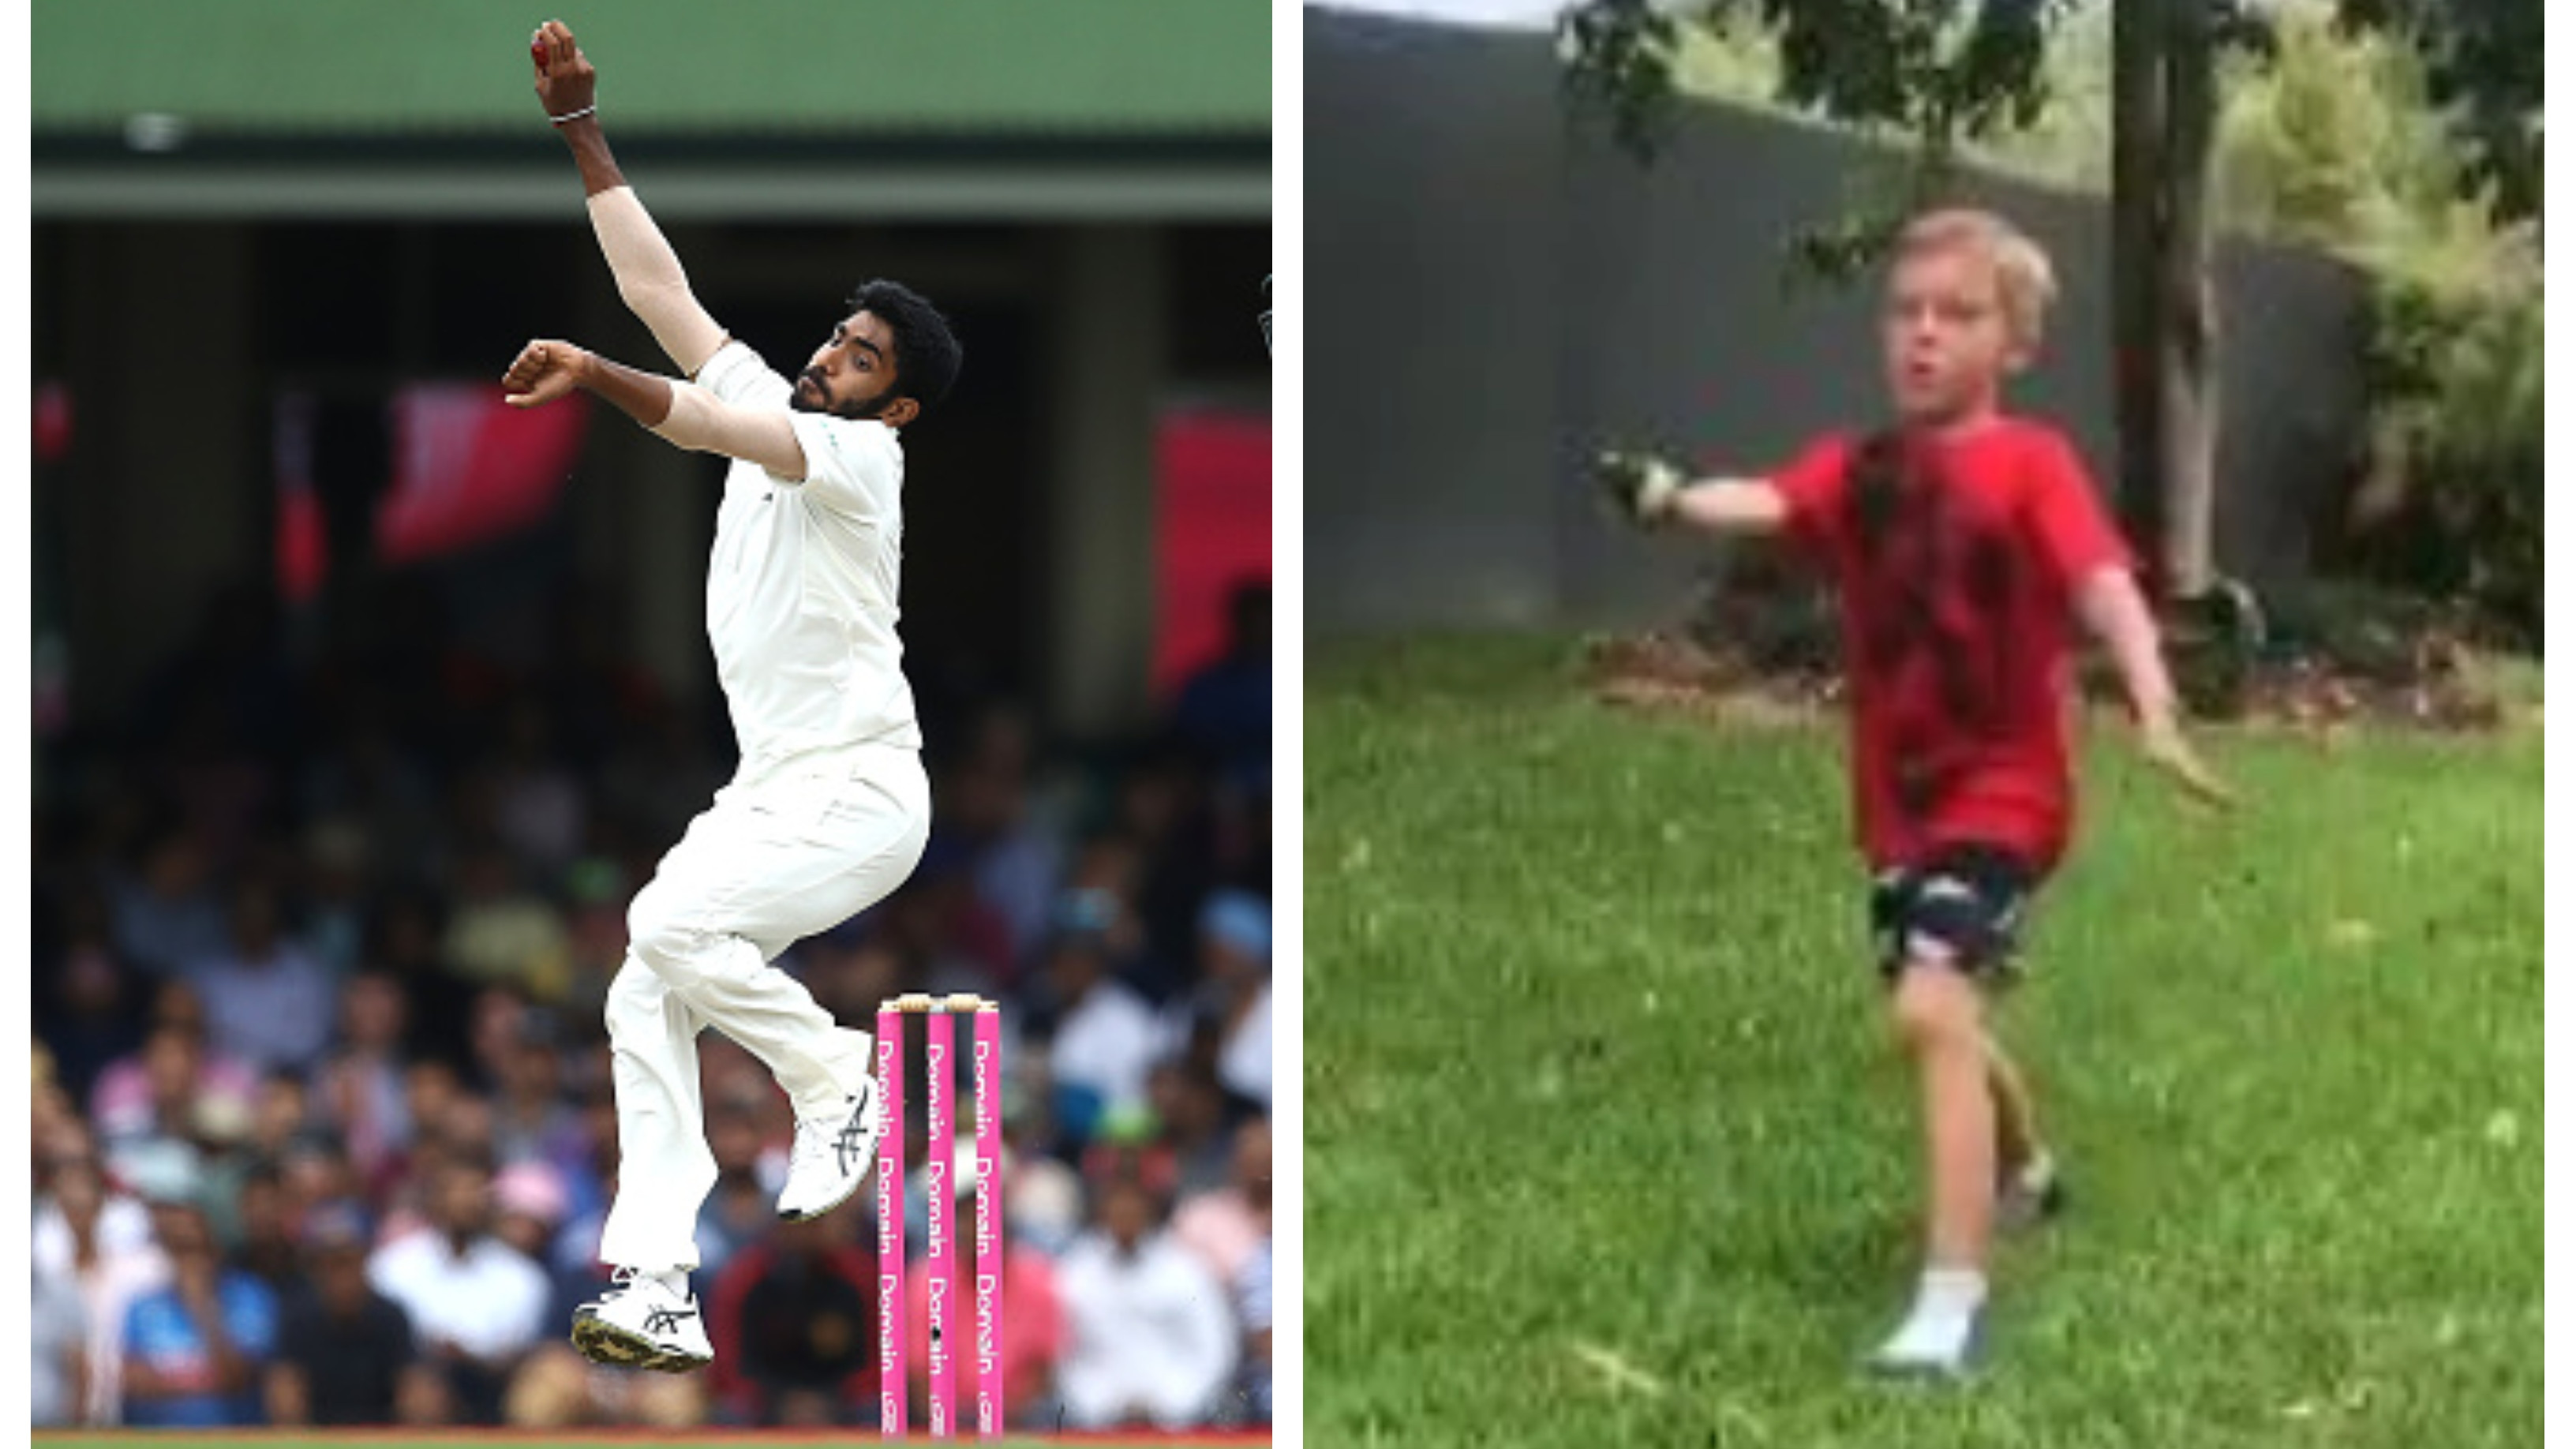 AUS v IND 2018-19: Jasprit Bumrah astounded by Australian kid imitating his bowling action